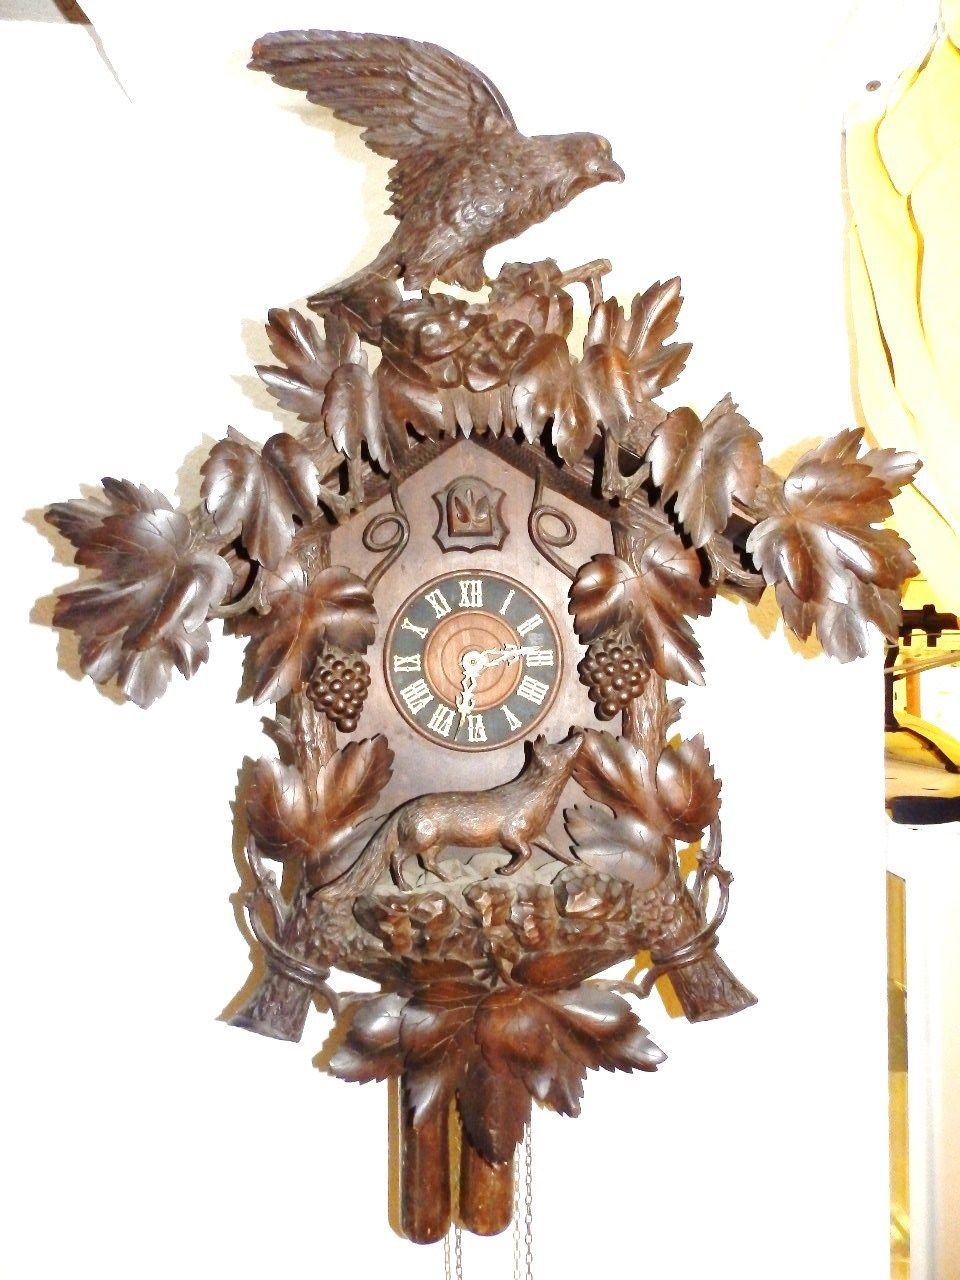 Nature lover's dream antique clock From the late 1880's